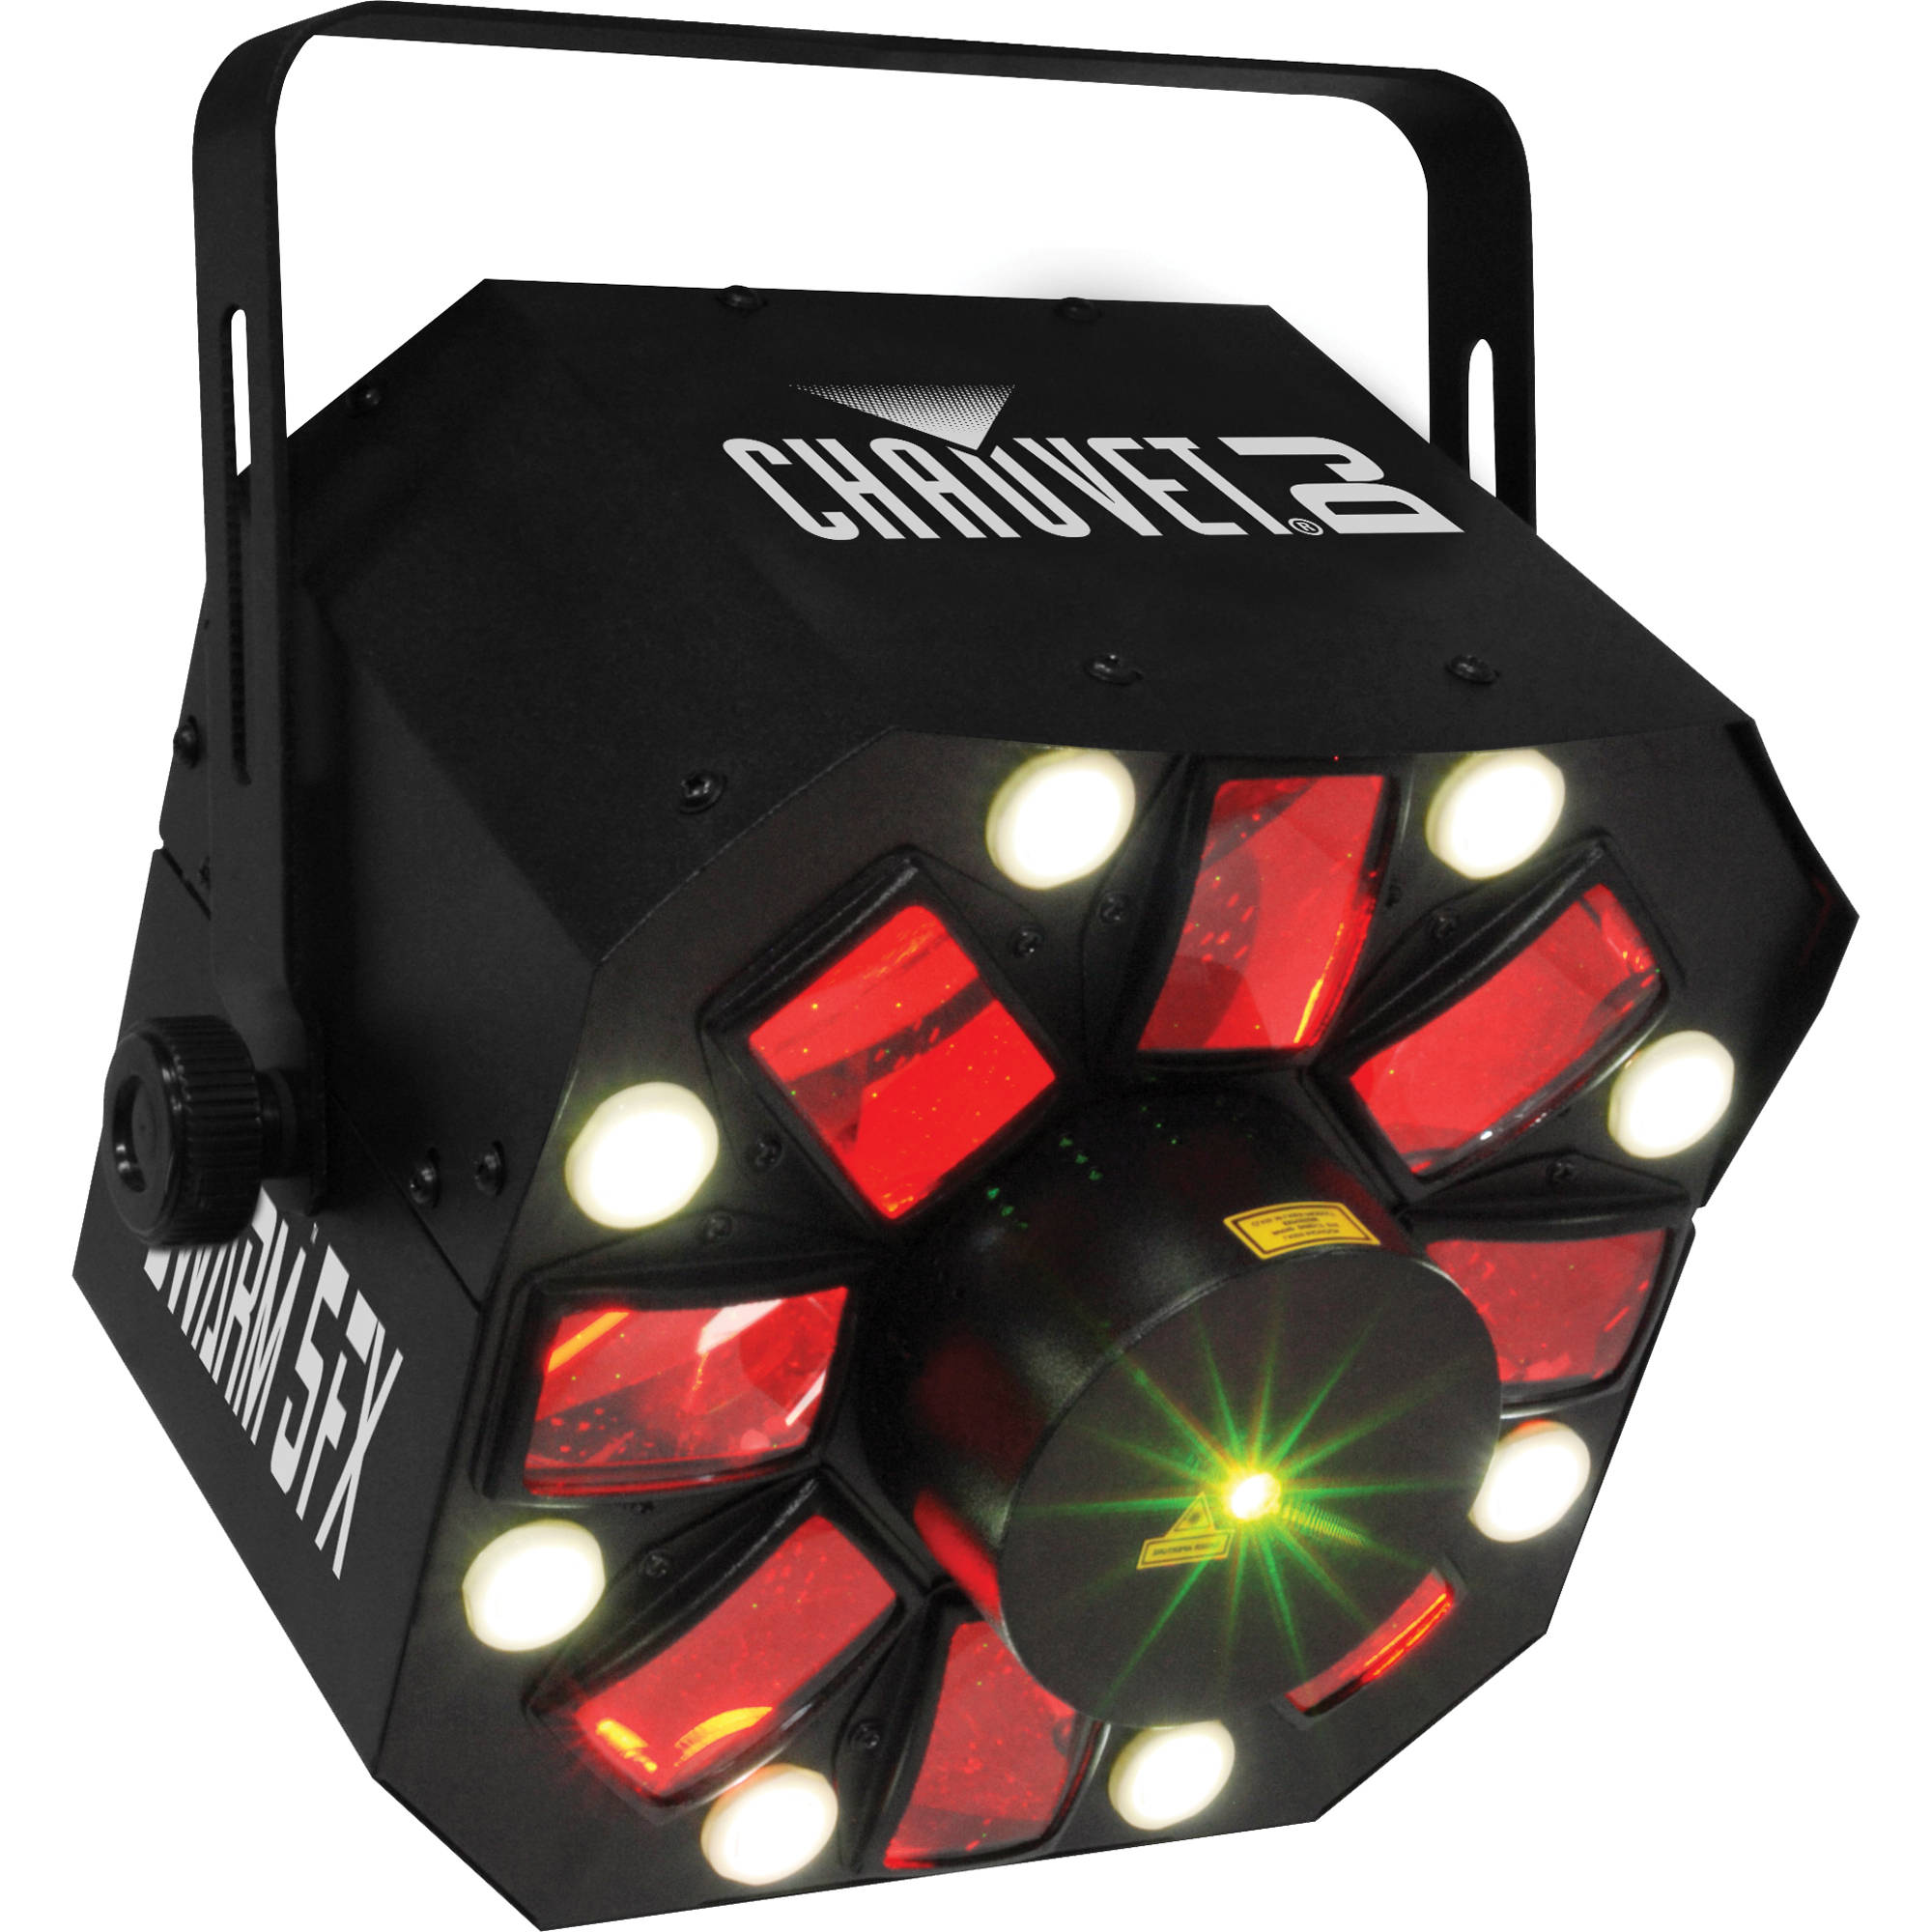 CHAUVET DJ Swarm 5 FX DJ Light with Power Cord  sc 1 st  Bu0026H & CHAUVET DJ Swarm 5 FX DJ Light with Power Cord SWARM5FX Bu0026H azcodes.com